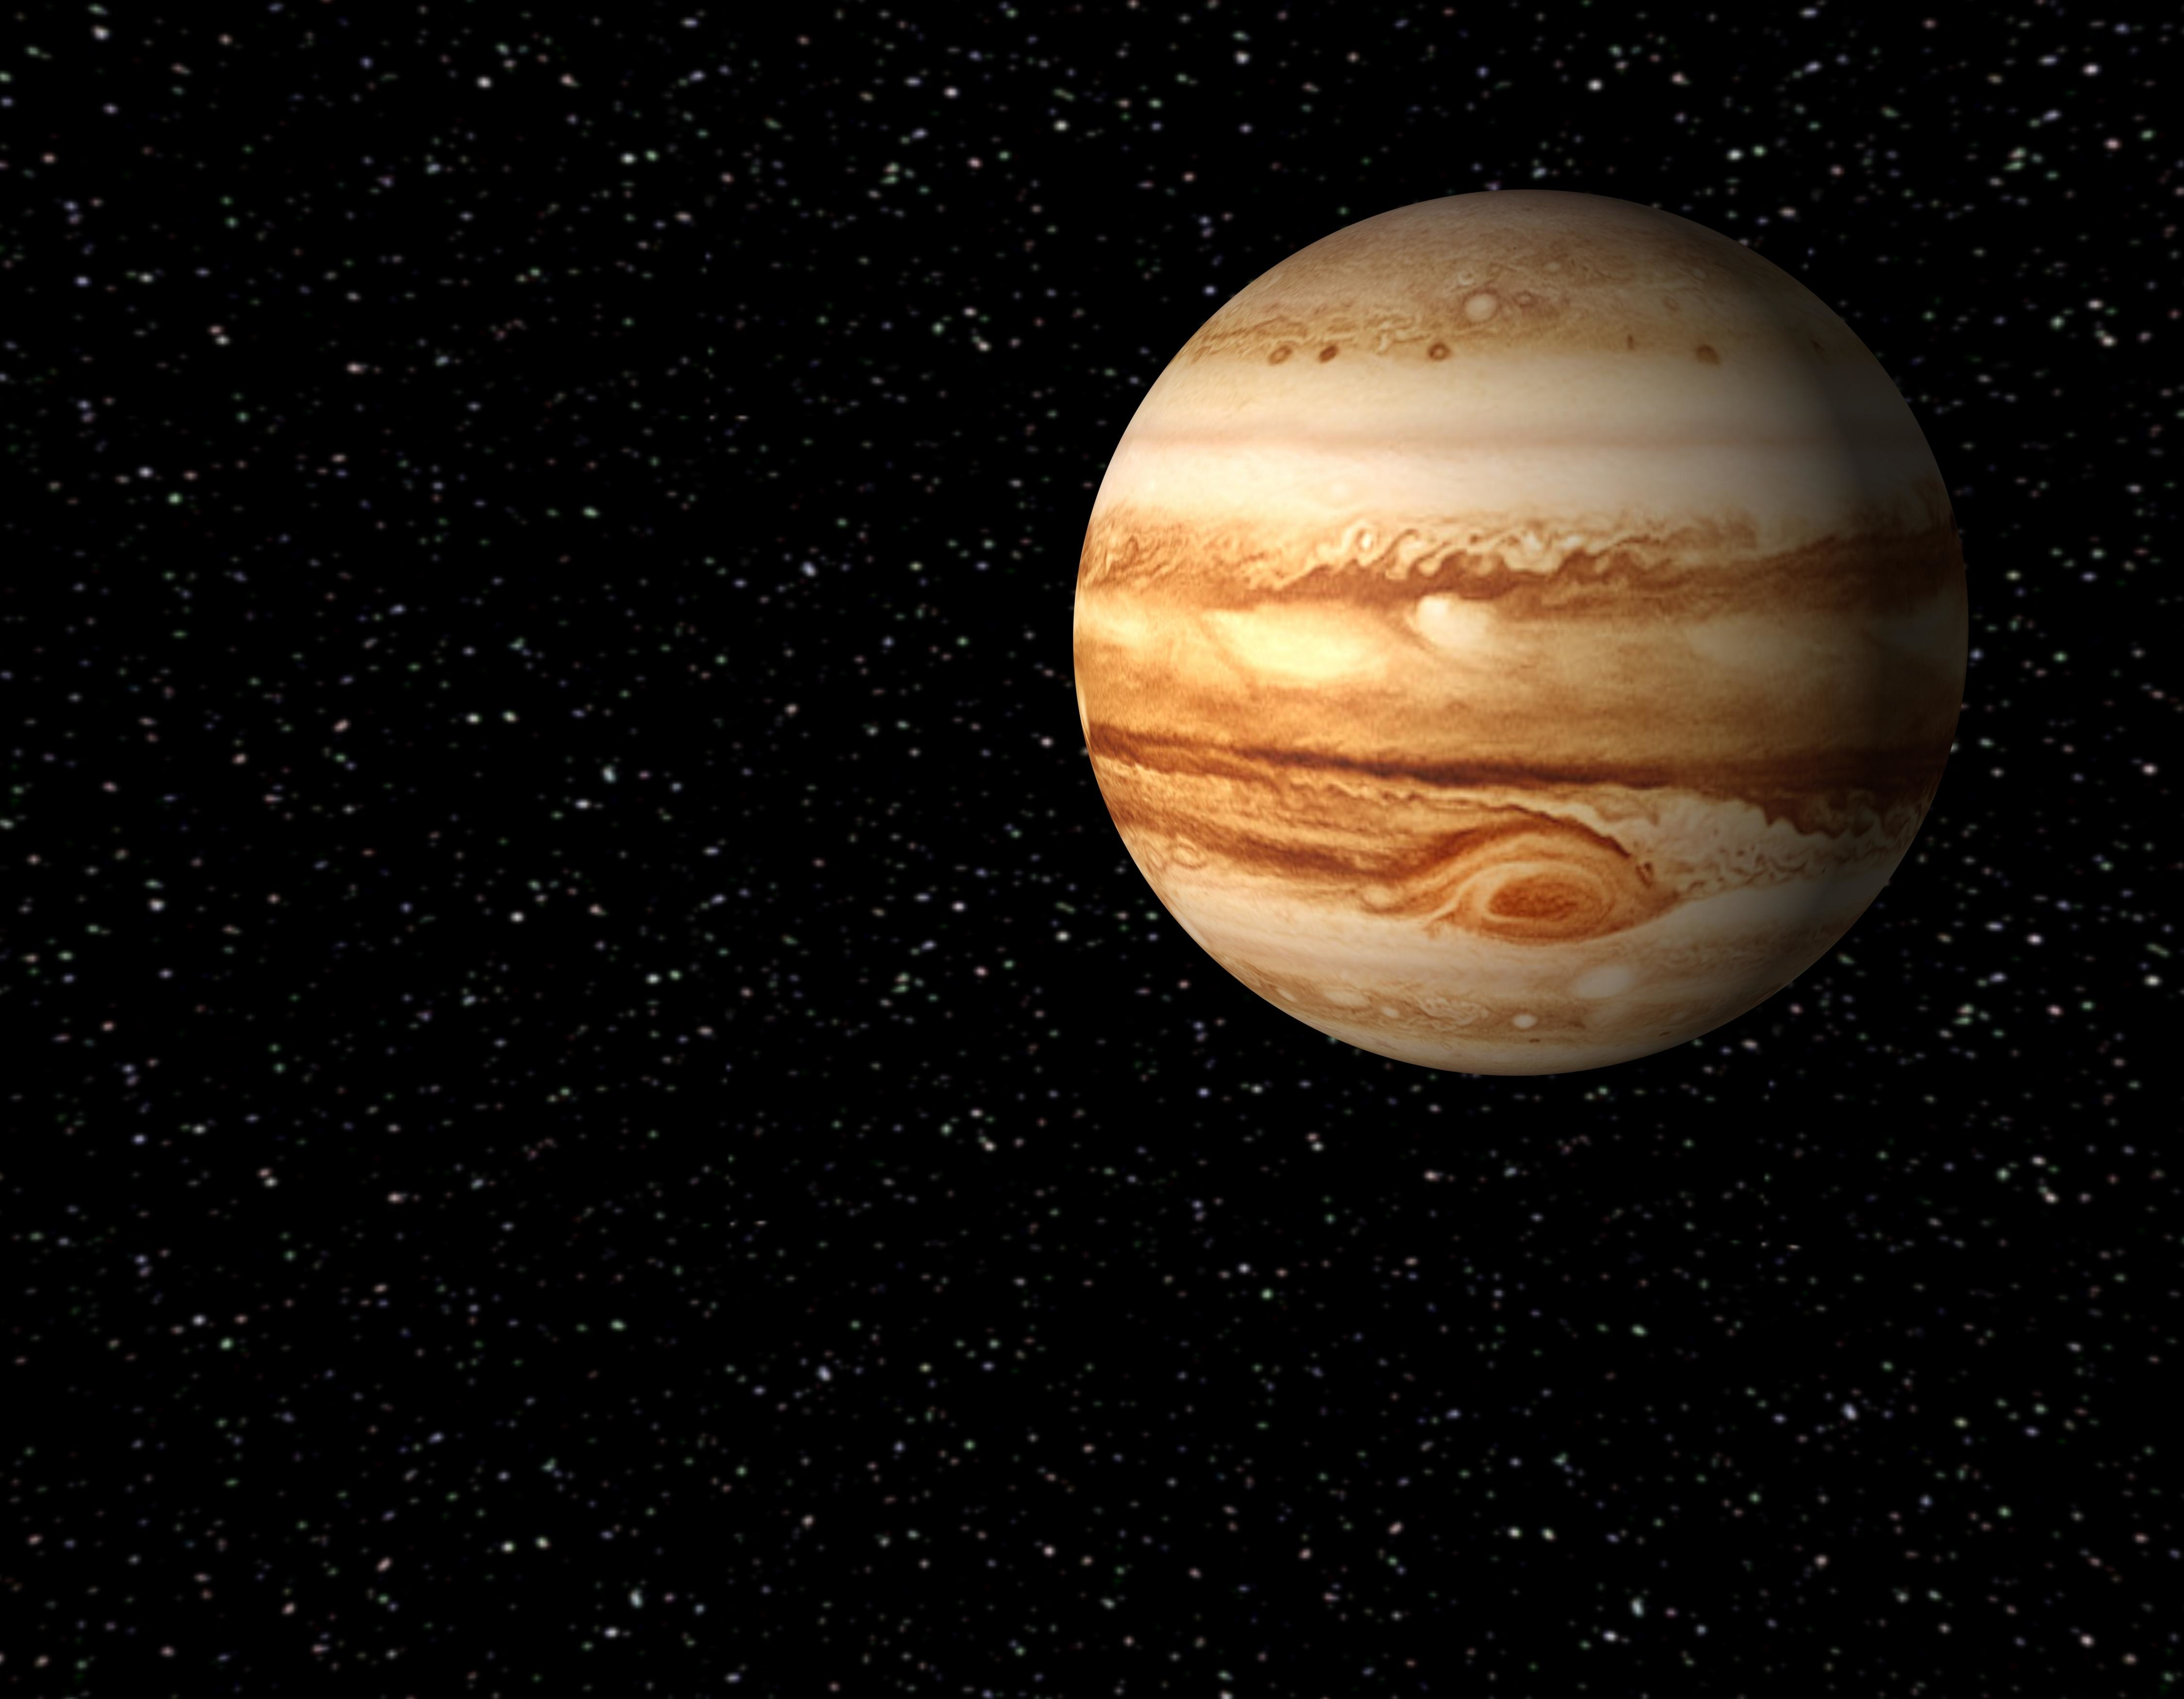 Jupiter is hurling asteroids into space, and some of them could be heading our way.